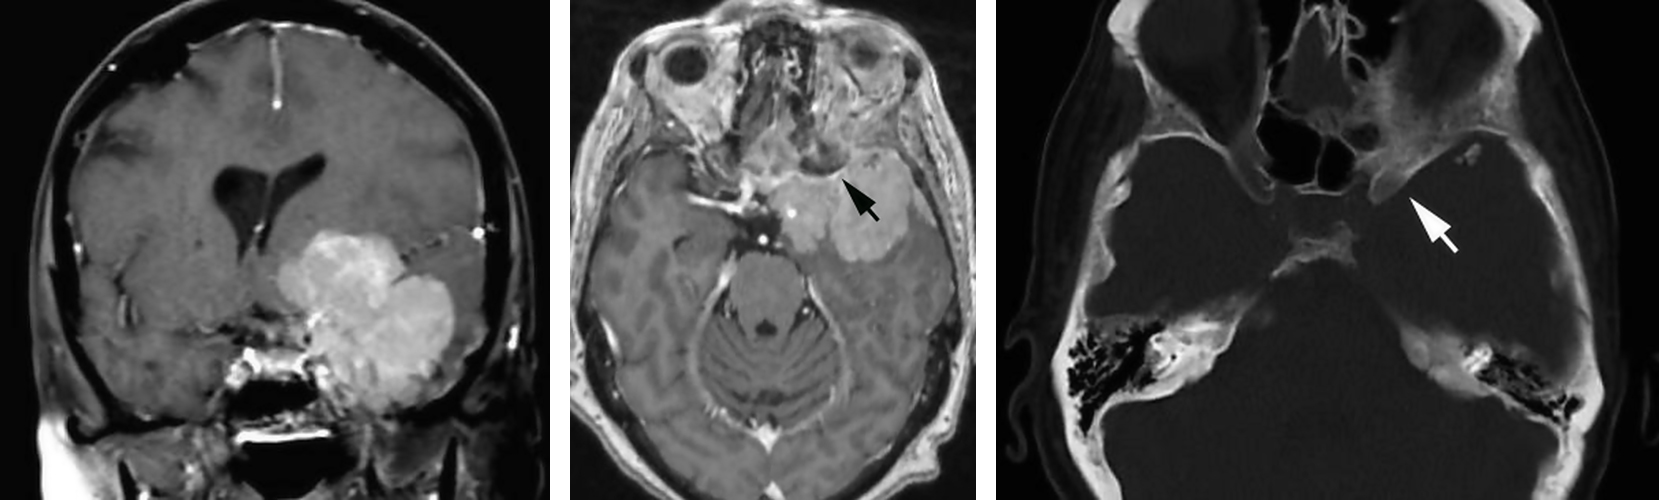 Figure 2: Medial sphenoid wing meningioma and associated hyperostosis (tumor-infiltrated) clinoid on MR (black arrow) and CT (white arrow) imaging.